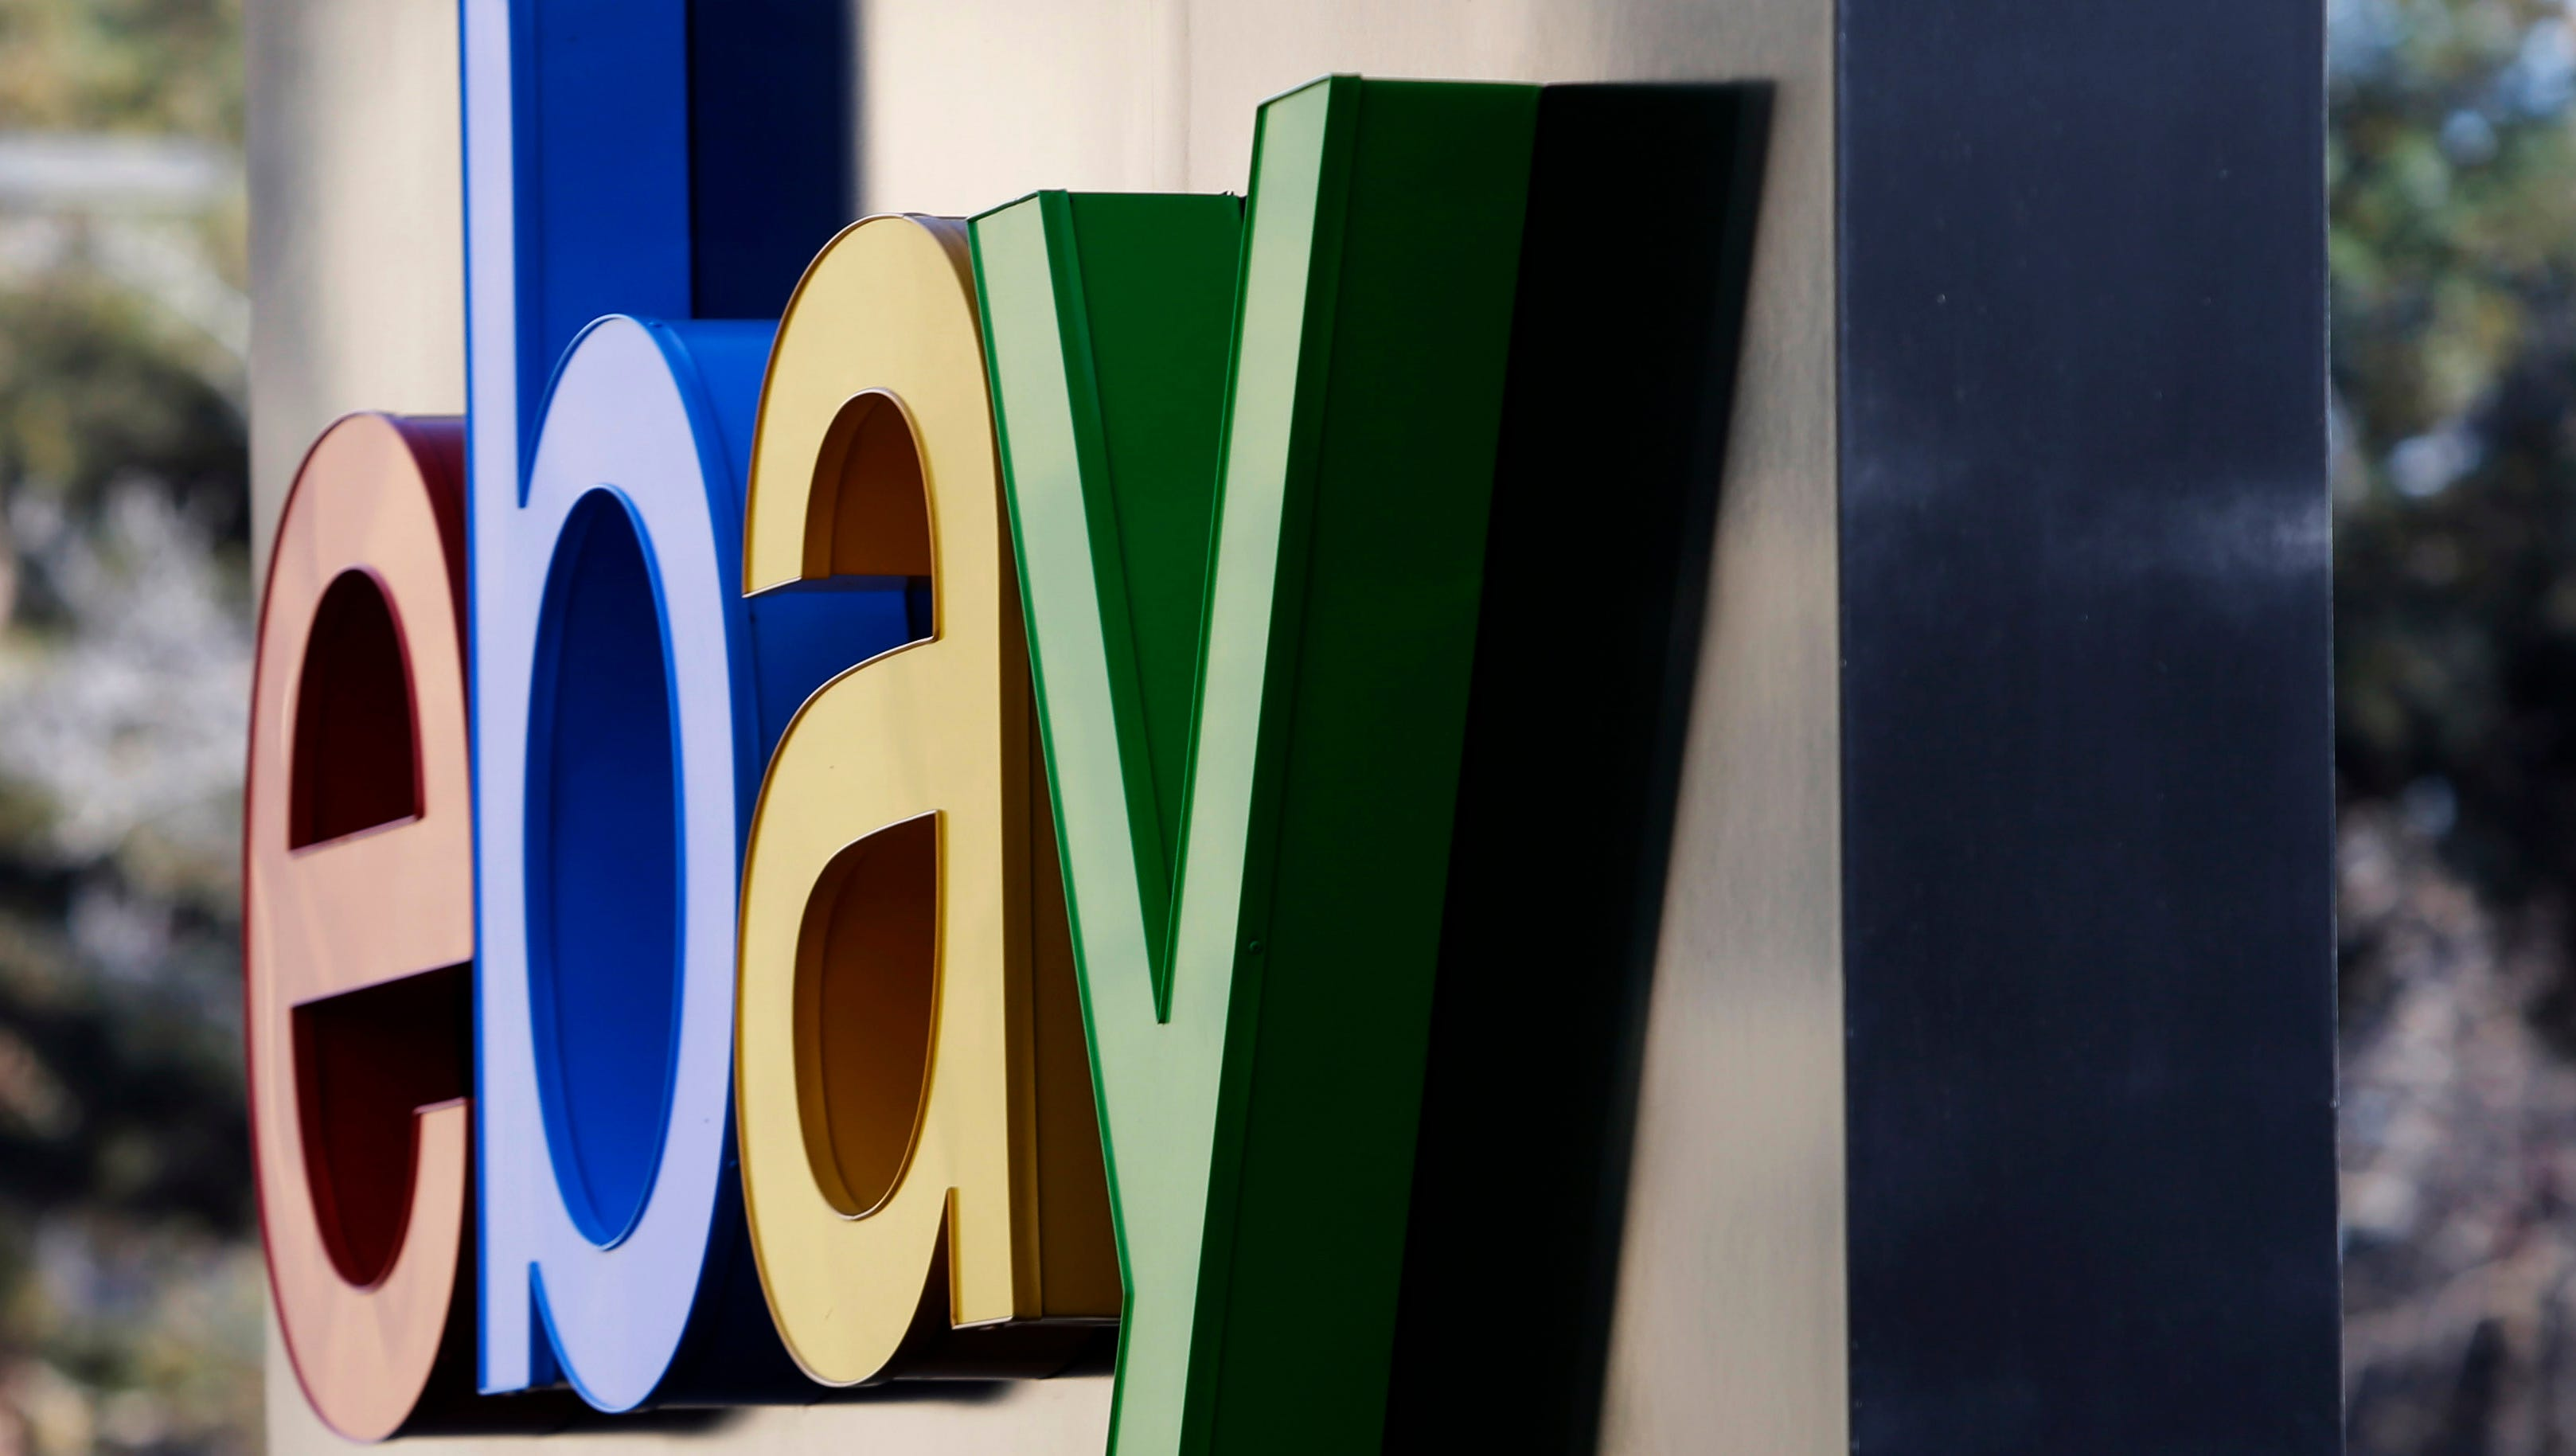 Watch Out For These 3 Ebay Scams